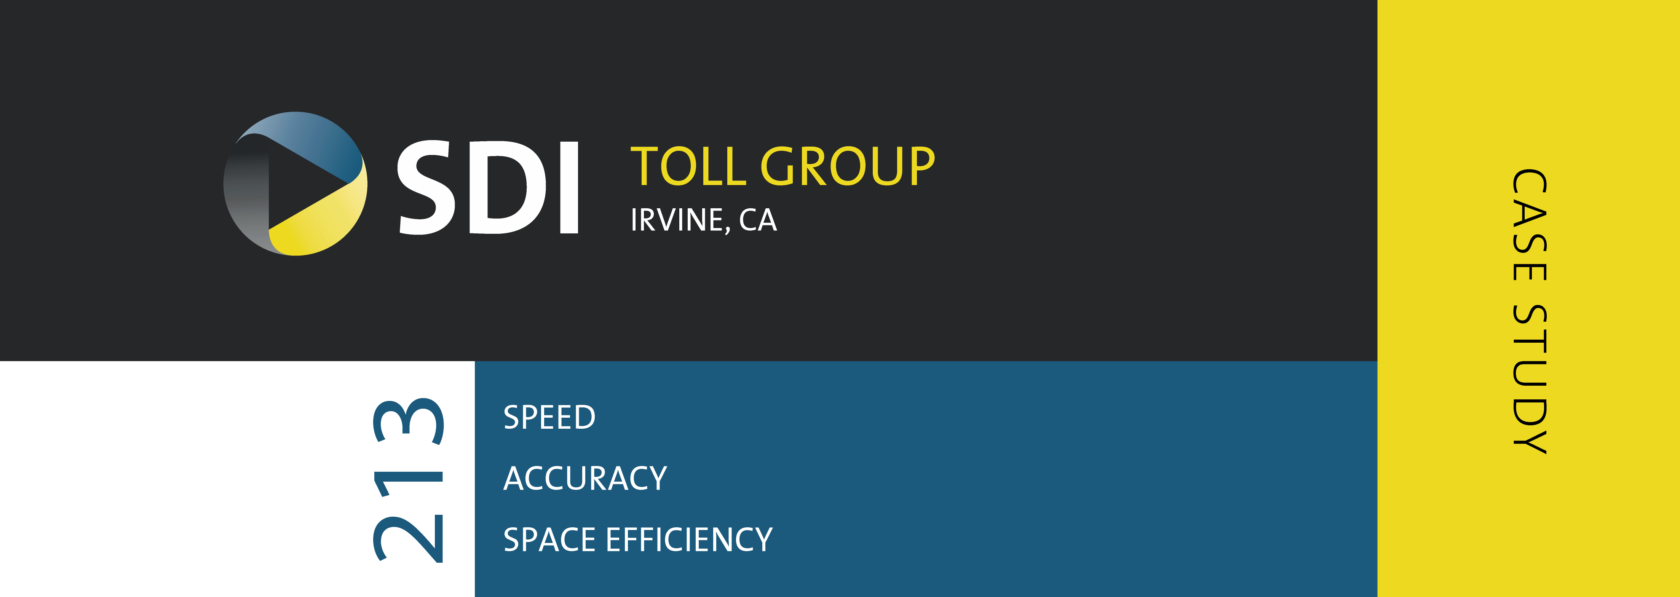 toll-group-03